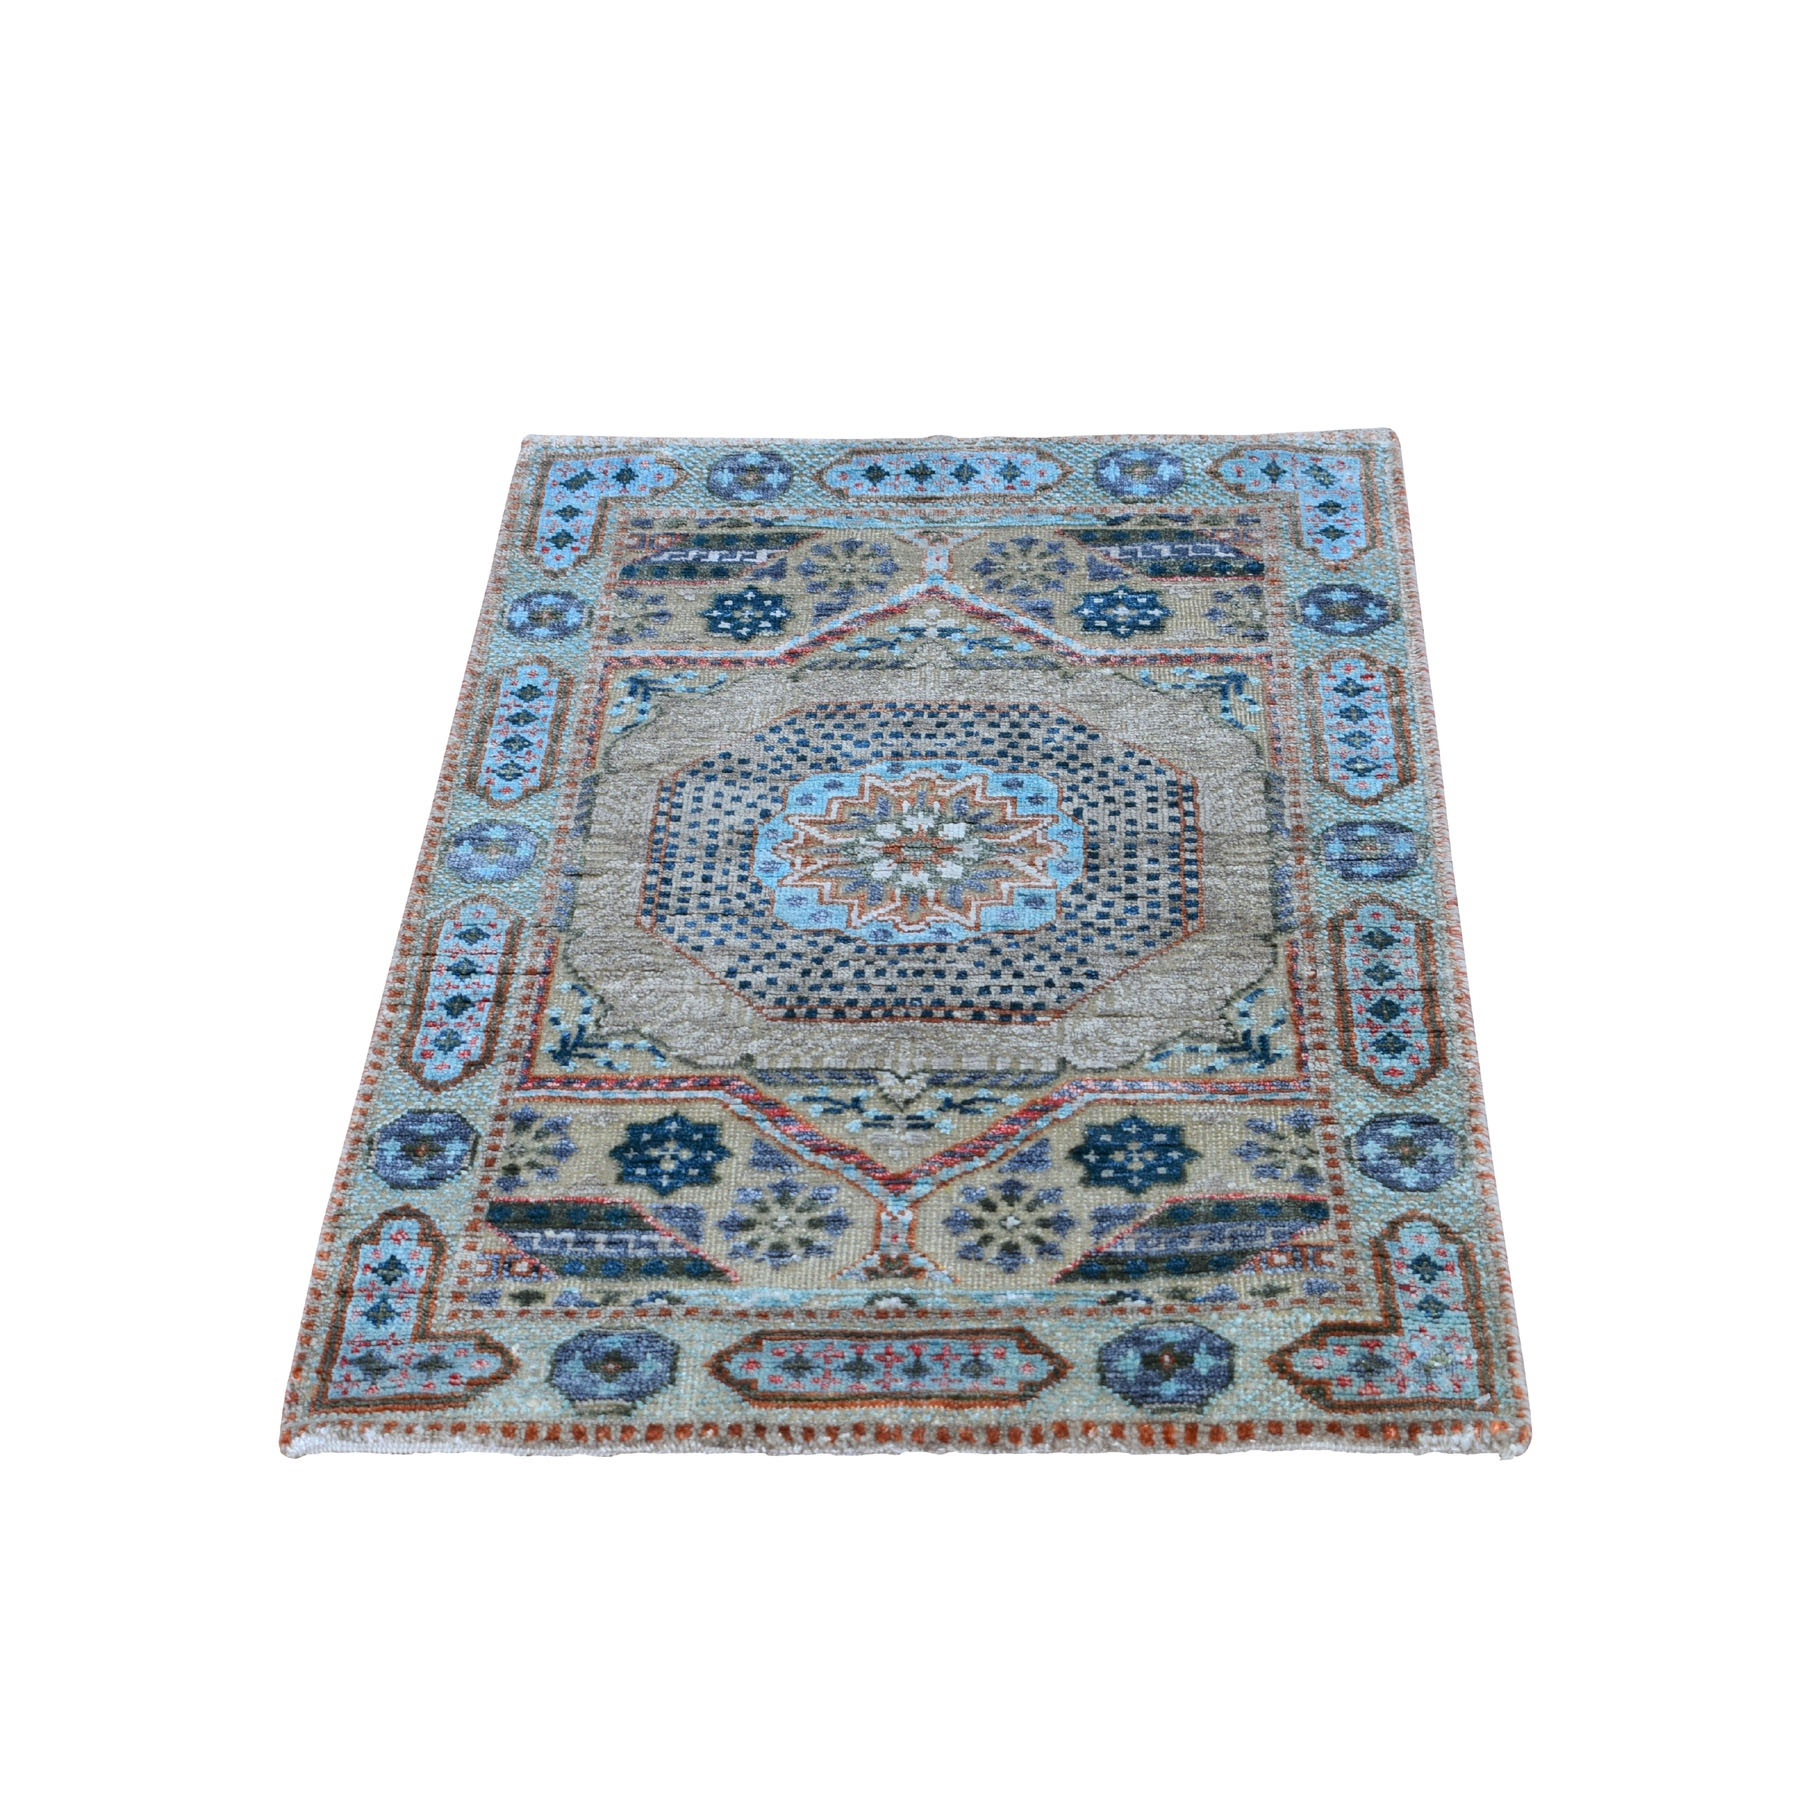 "2'X3'1"" Blue Silk With Textured Wool Mamluk Design Hand Knotted Oriental Rug moad9c7a"